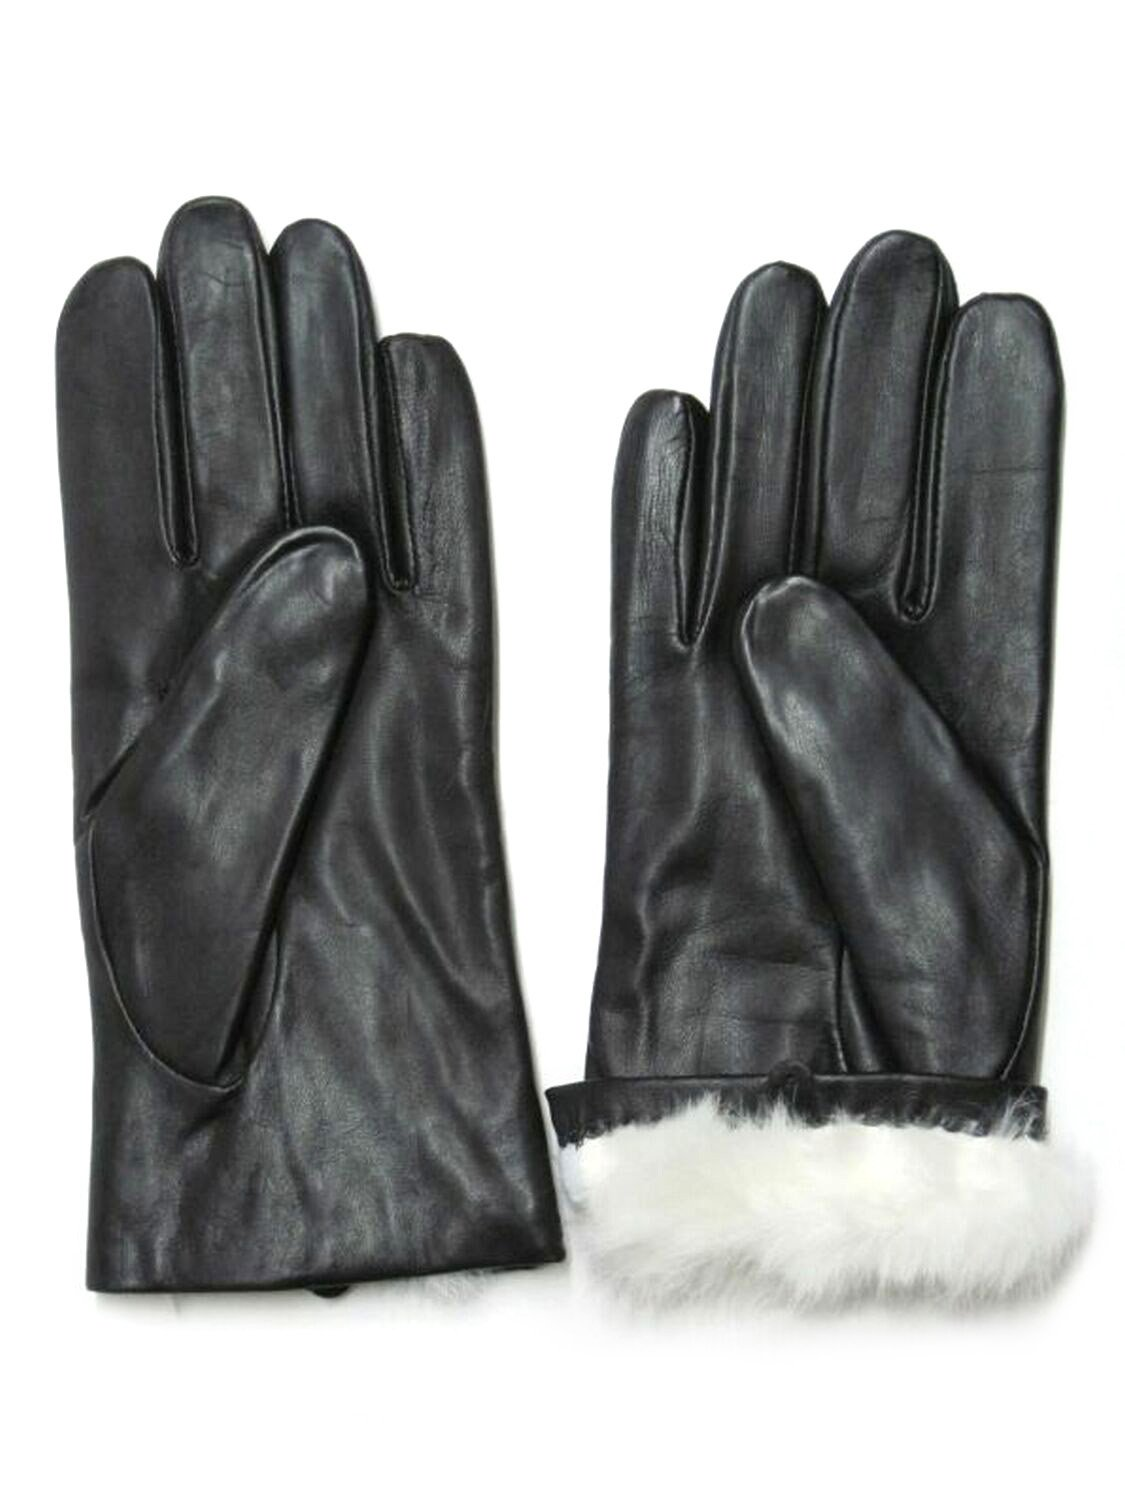 Fownes Women's Rabbit Fur Lined Black Napa Leather Gloves 7.5/L by Fownes Brothers